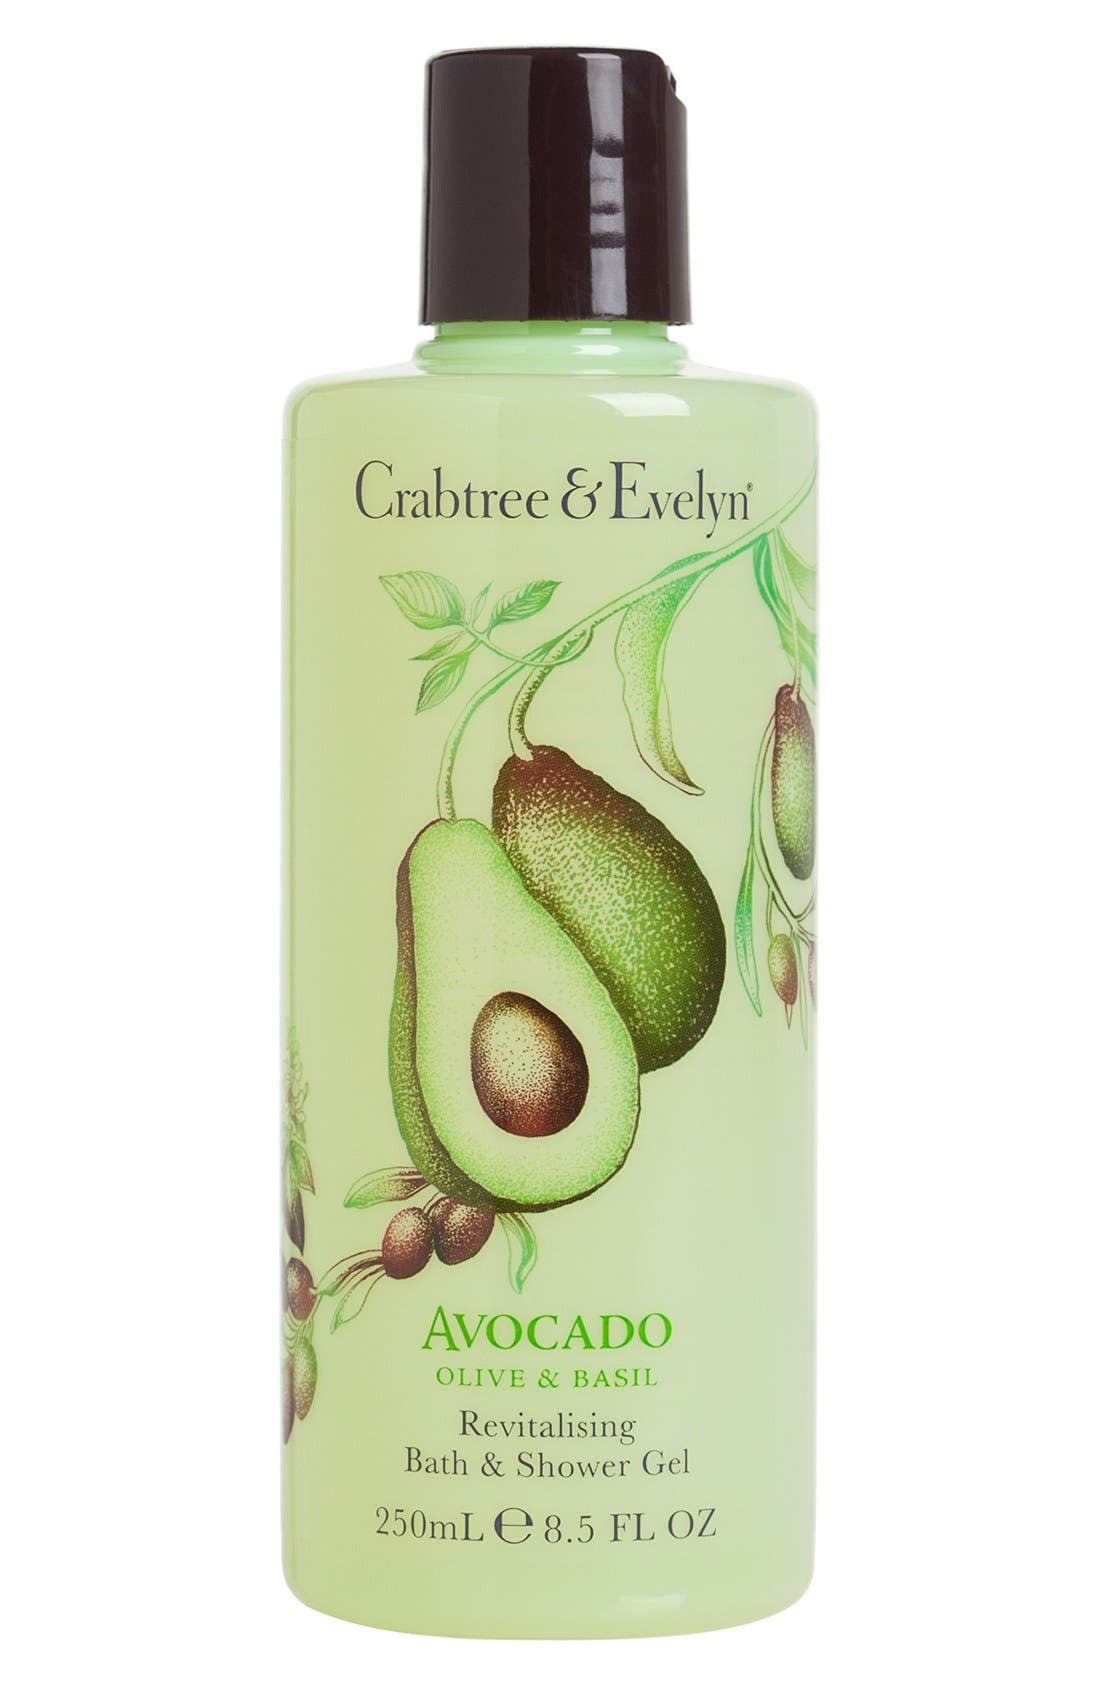 Crabtree & Evelyn 'Avocado, Olive & Basil' Bath & Shower Gel